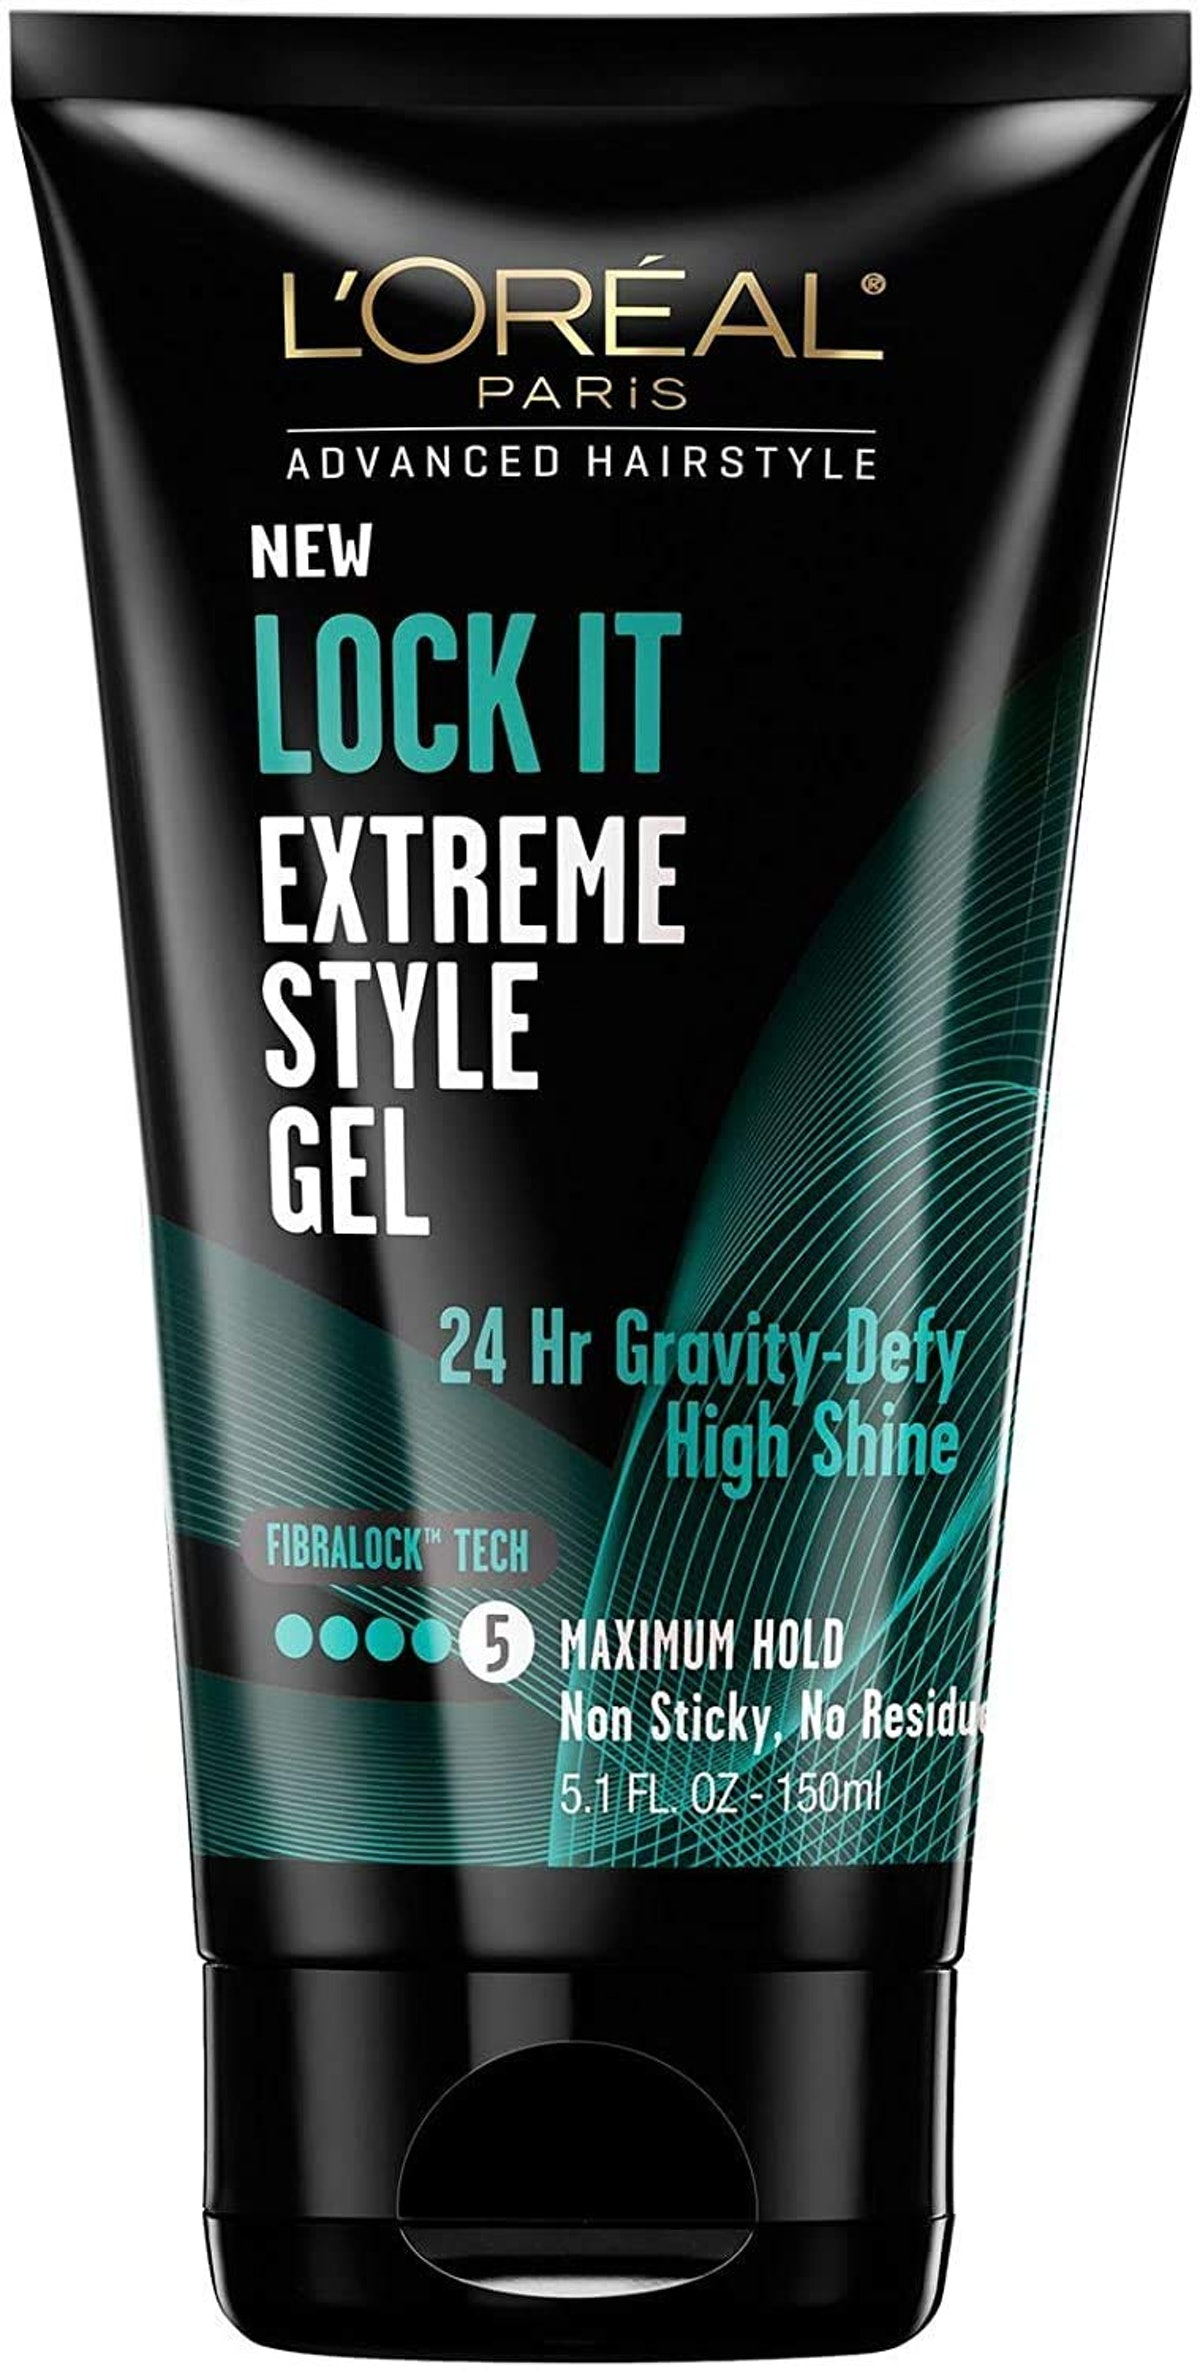 Advanced Hairstyle LOCK IT Extreme Style Gel